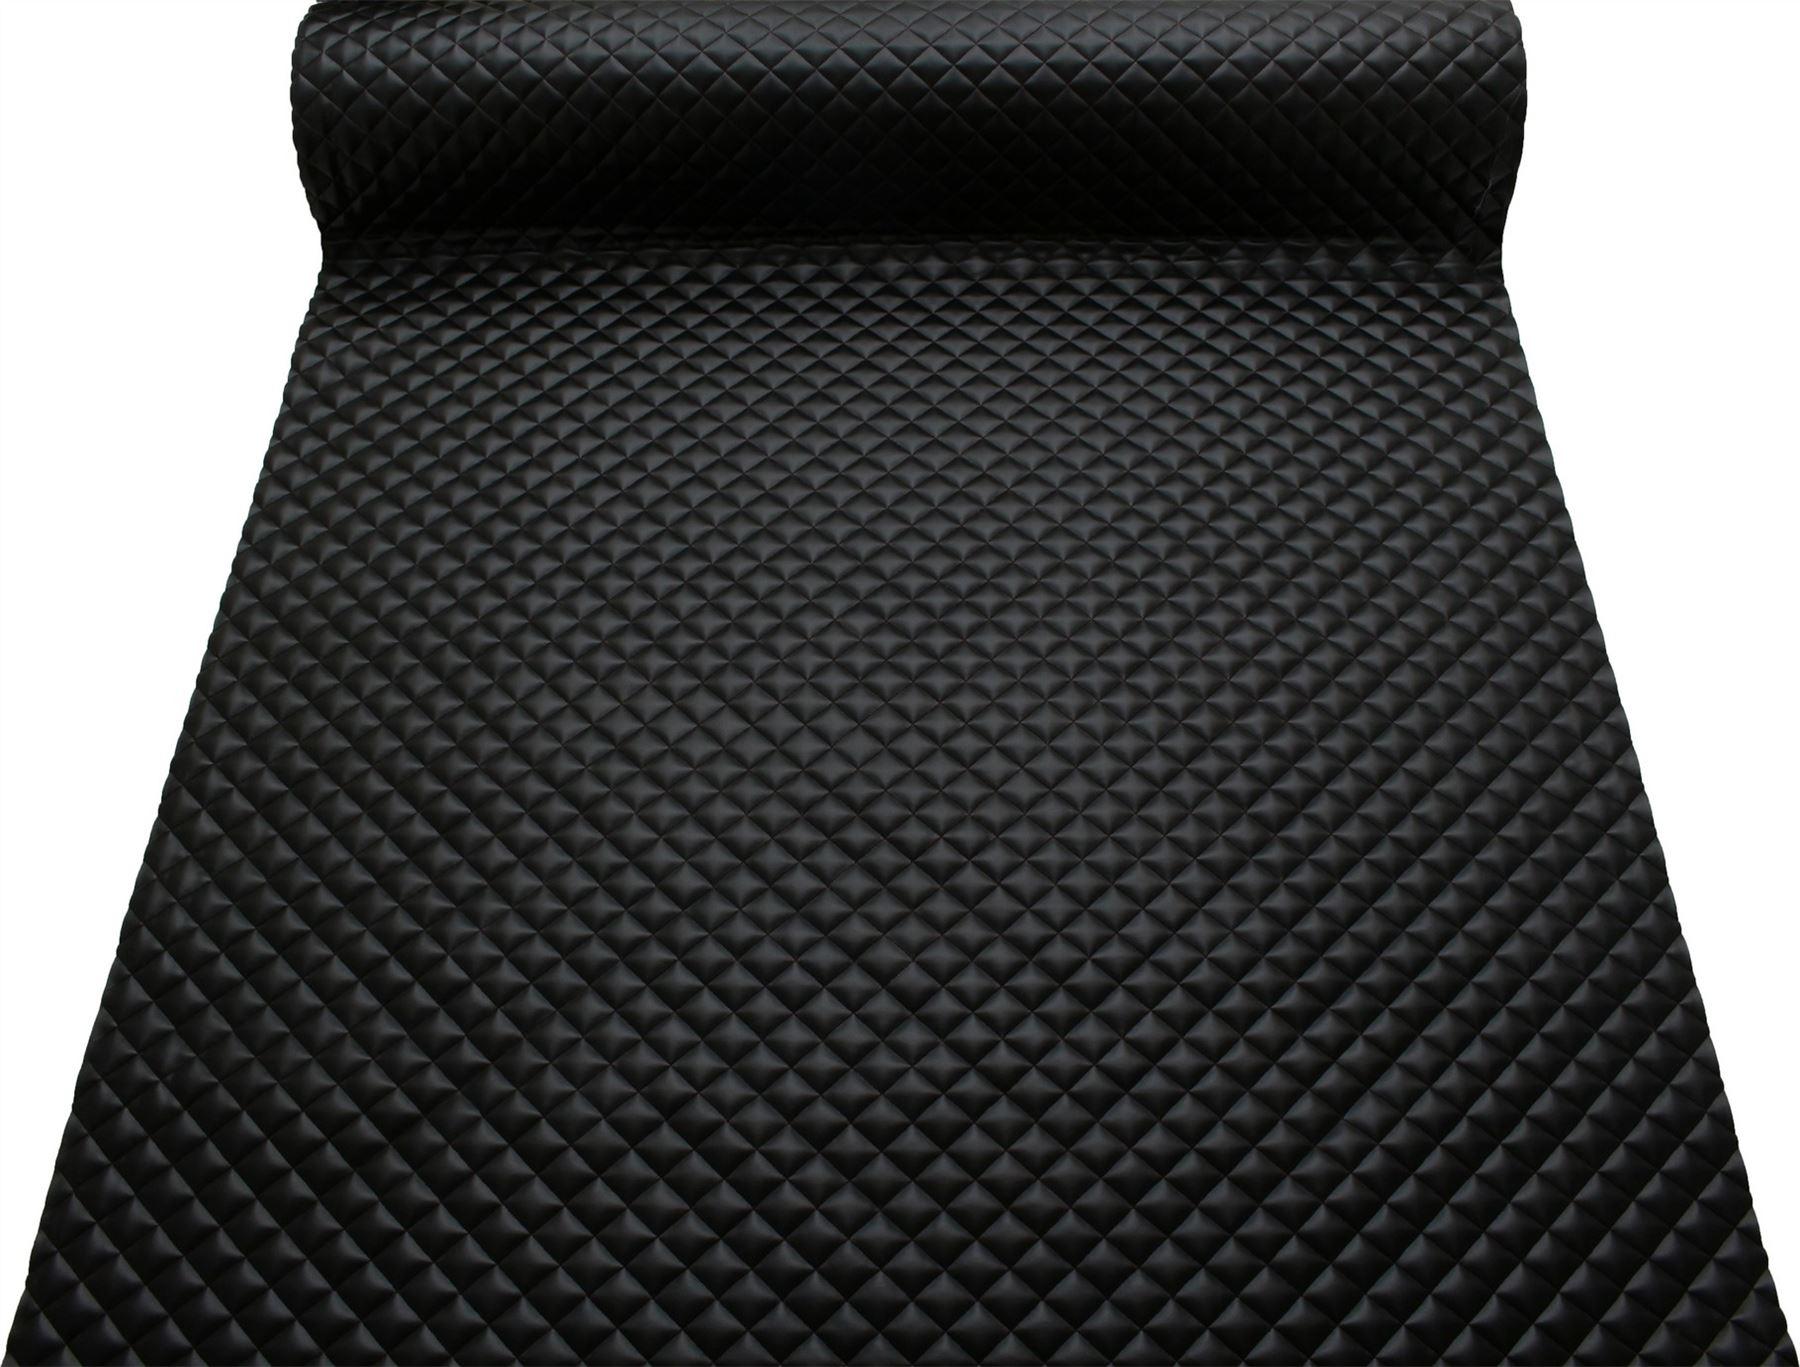 thumbnail 12 - Quilted leather Diamond Padded Cushion Faux Leather Interior Upholstery Fabric